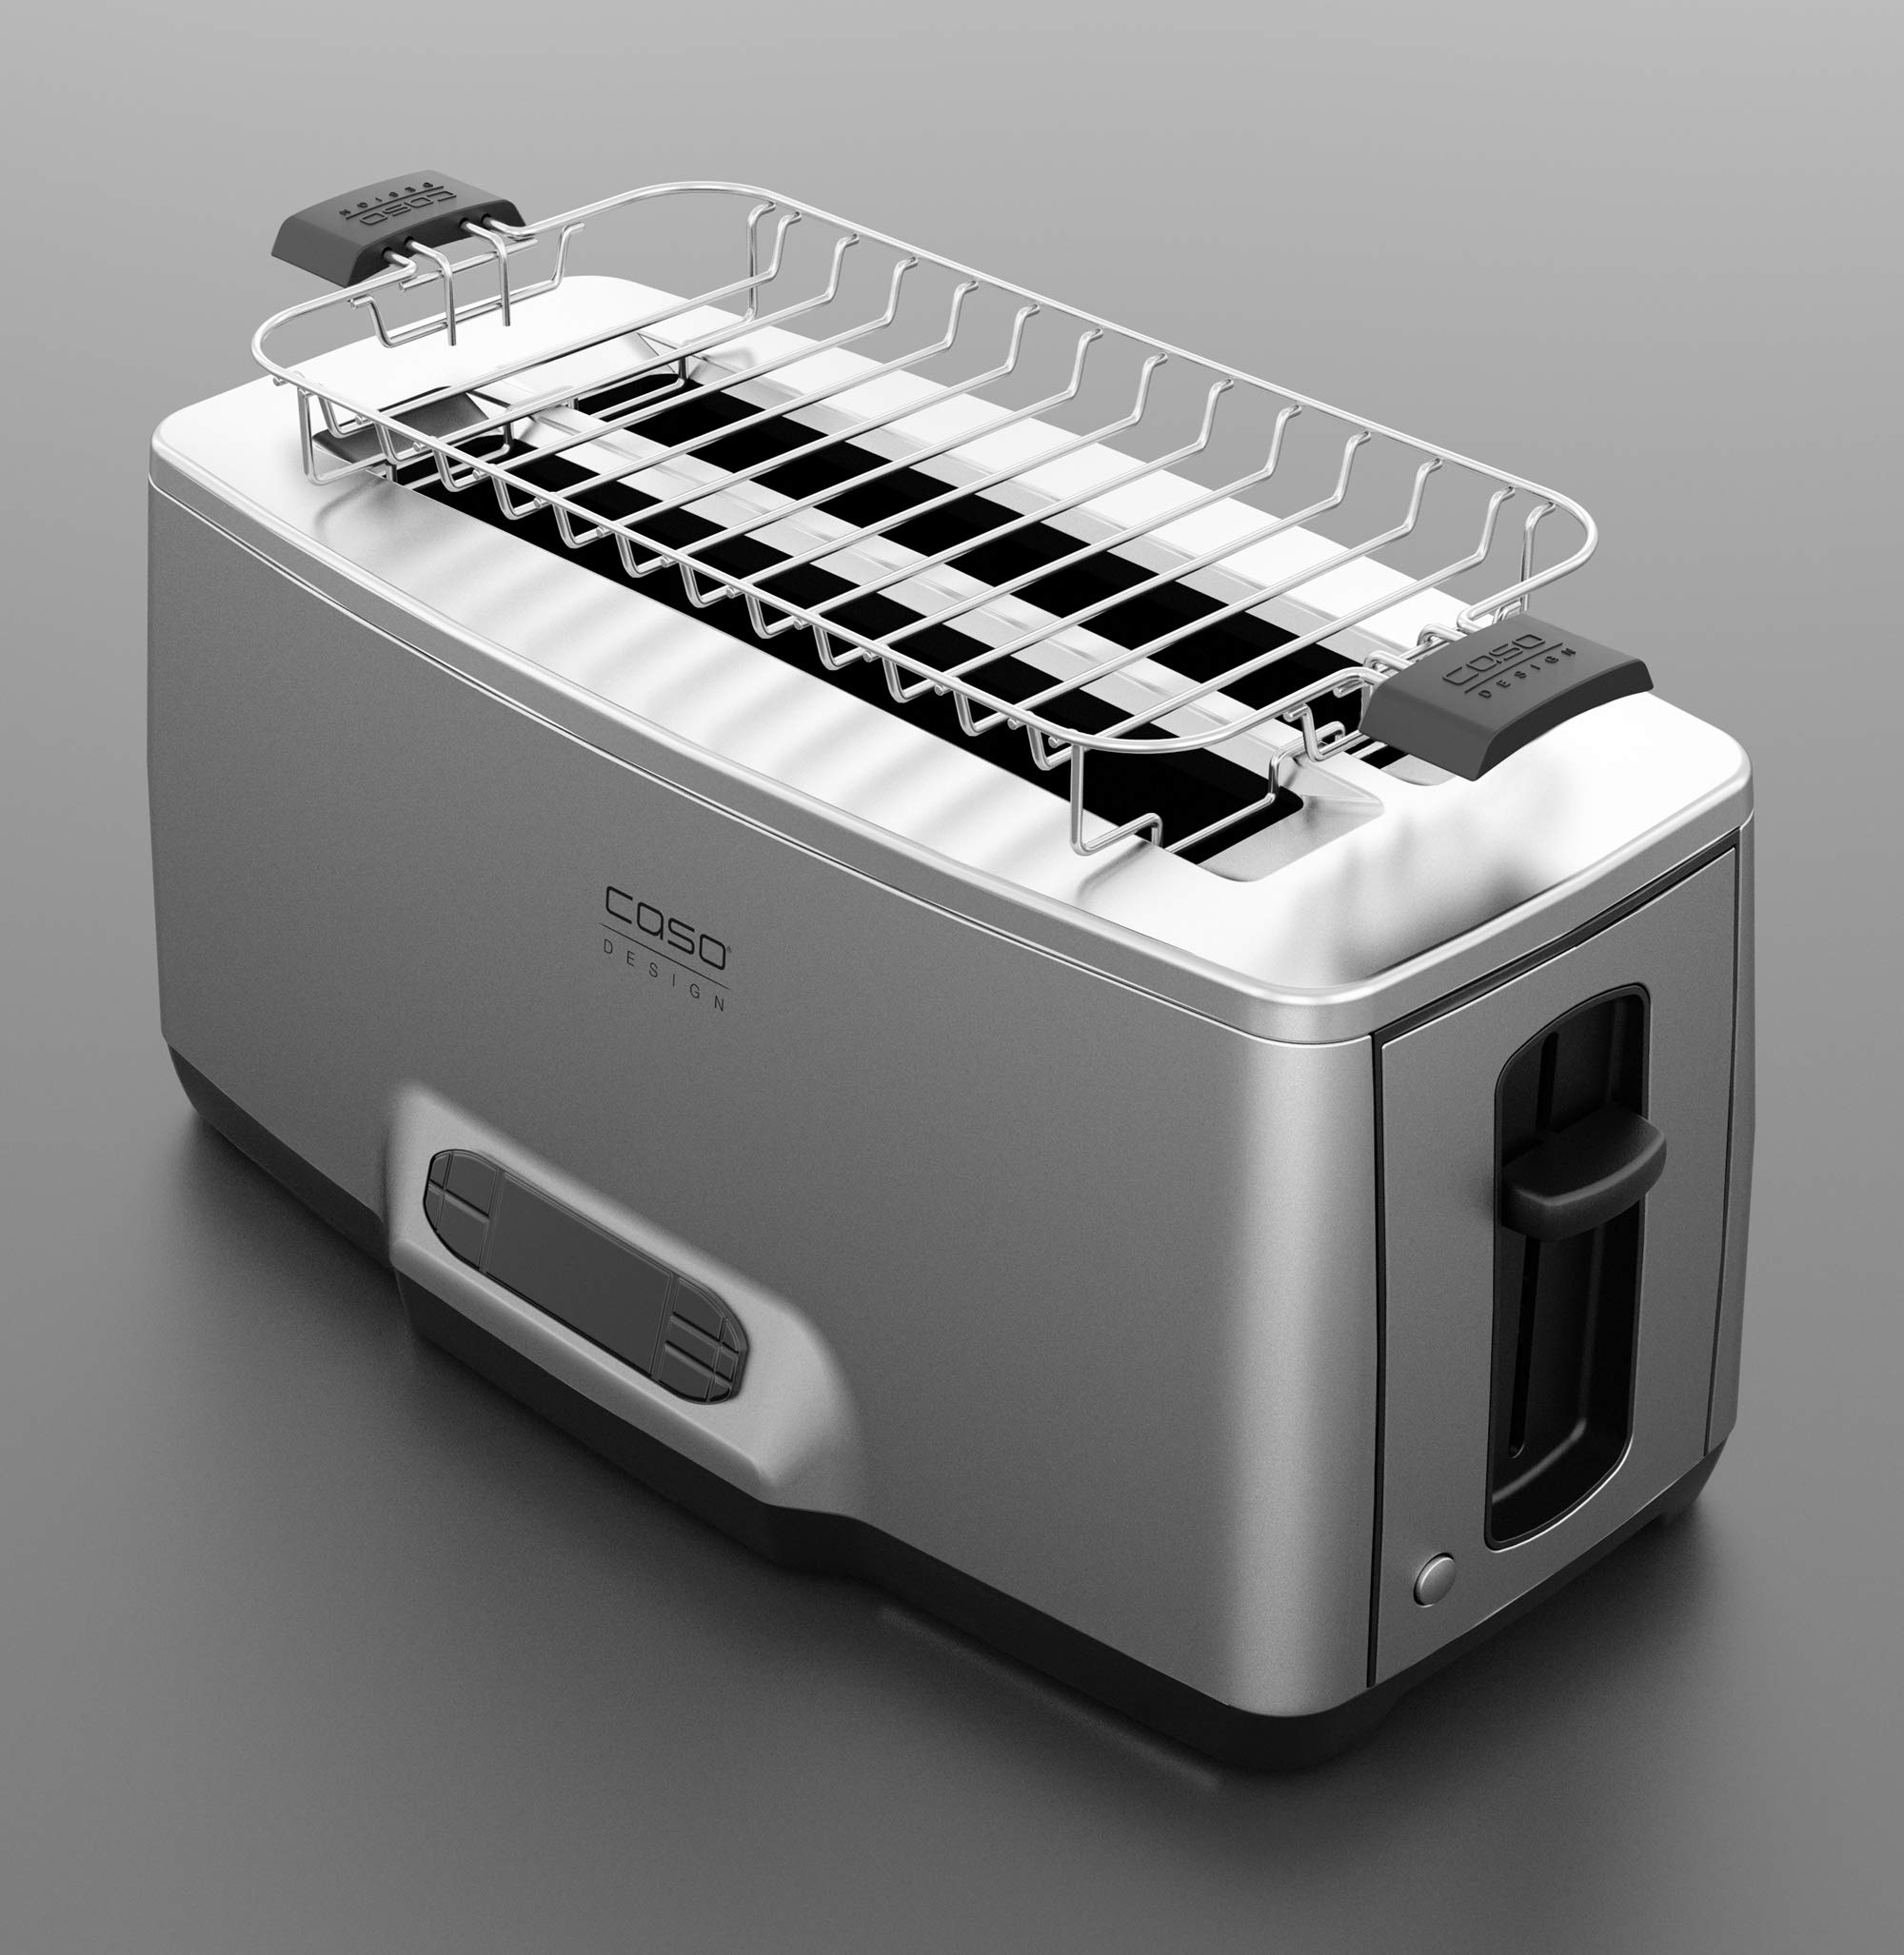 Caso Design INOX.4 Four-Slice Toaster with Wire Warming Basket Attachment, 4, Stainless by Caso Design (Image #5)